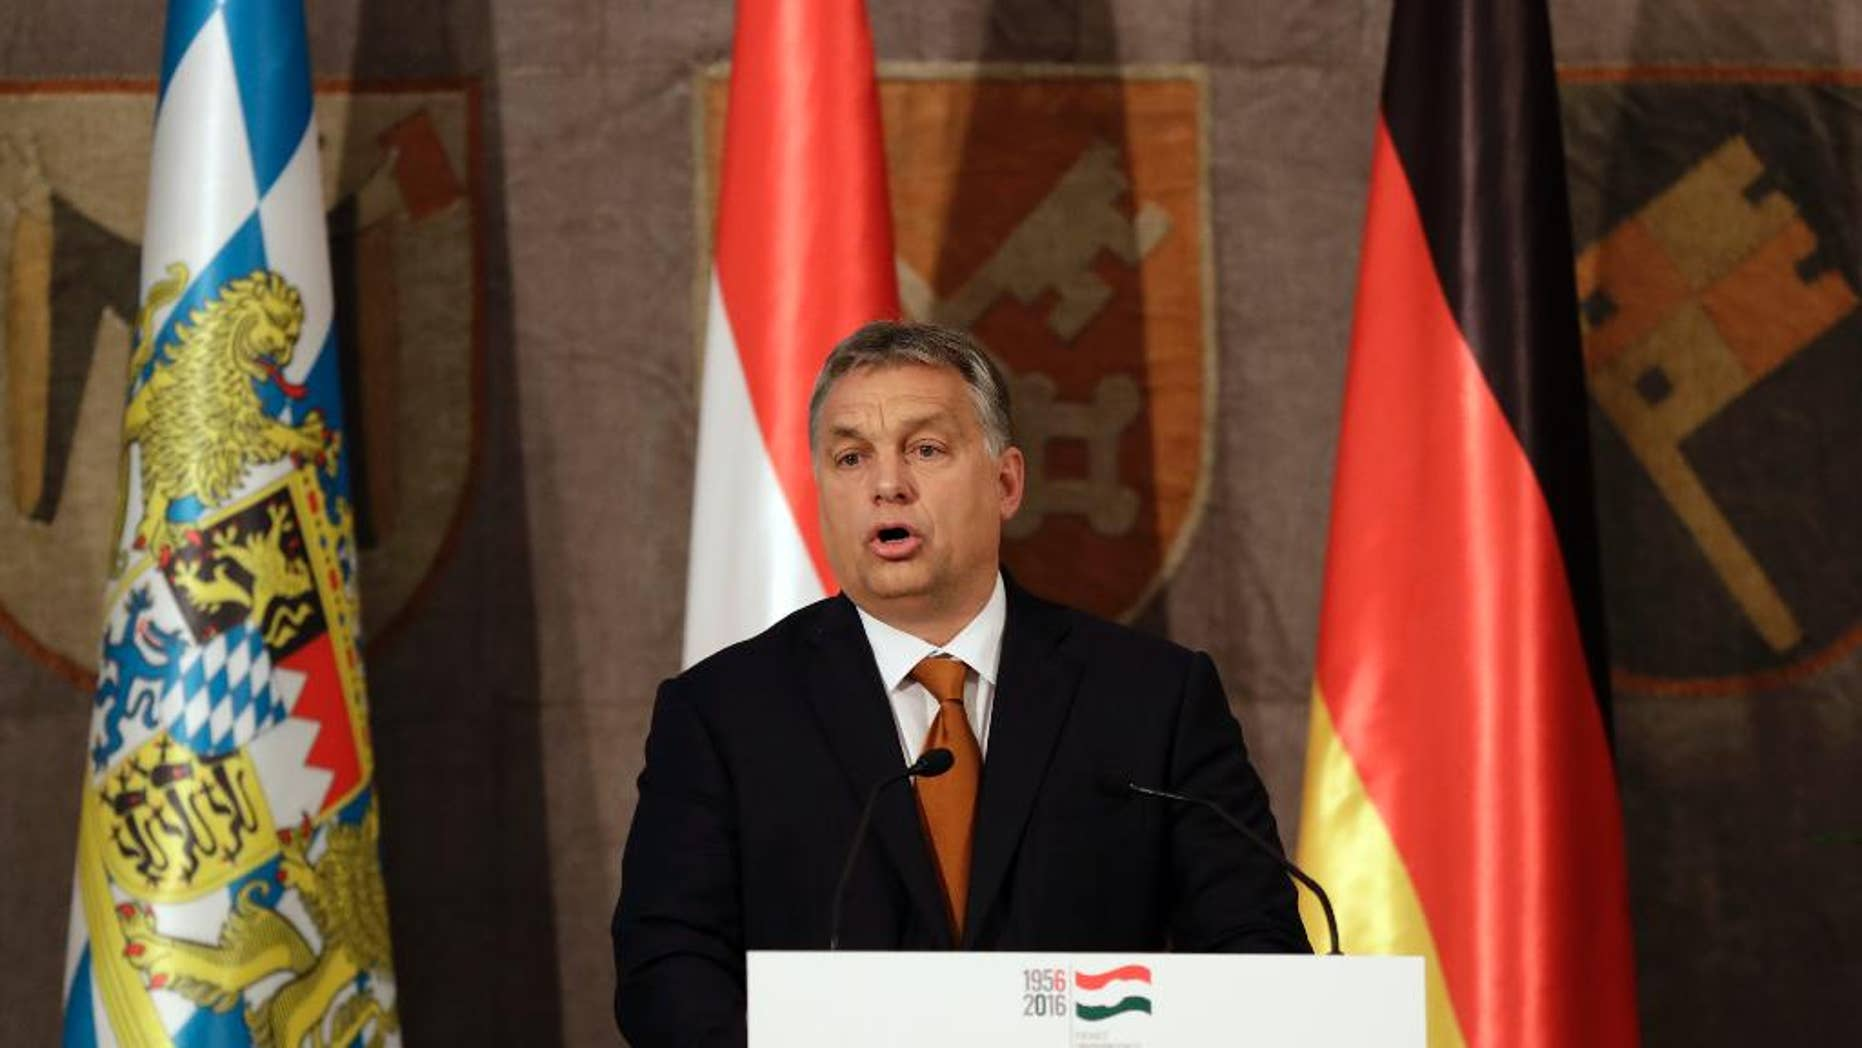 Hungary's Prime Minister Victor Orban stands on the podium during his speech to mark the 60th anniversary of the Hungarian Revolution in Munich, Germany, Monday, Oct. 17, 2016. (AP Photo/Matthias Schrader)